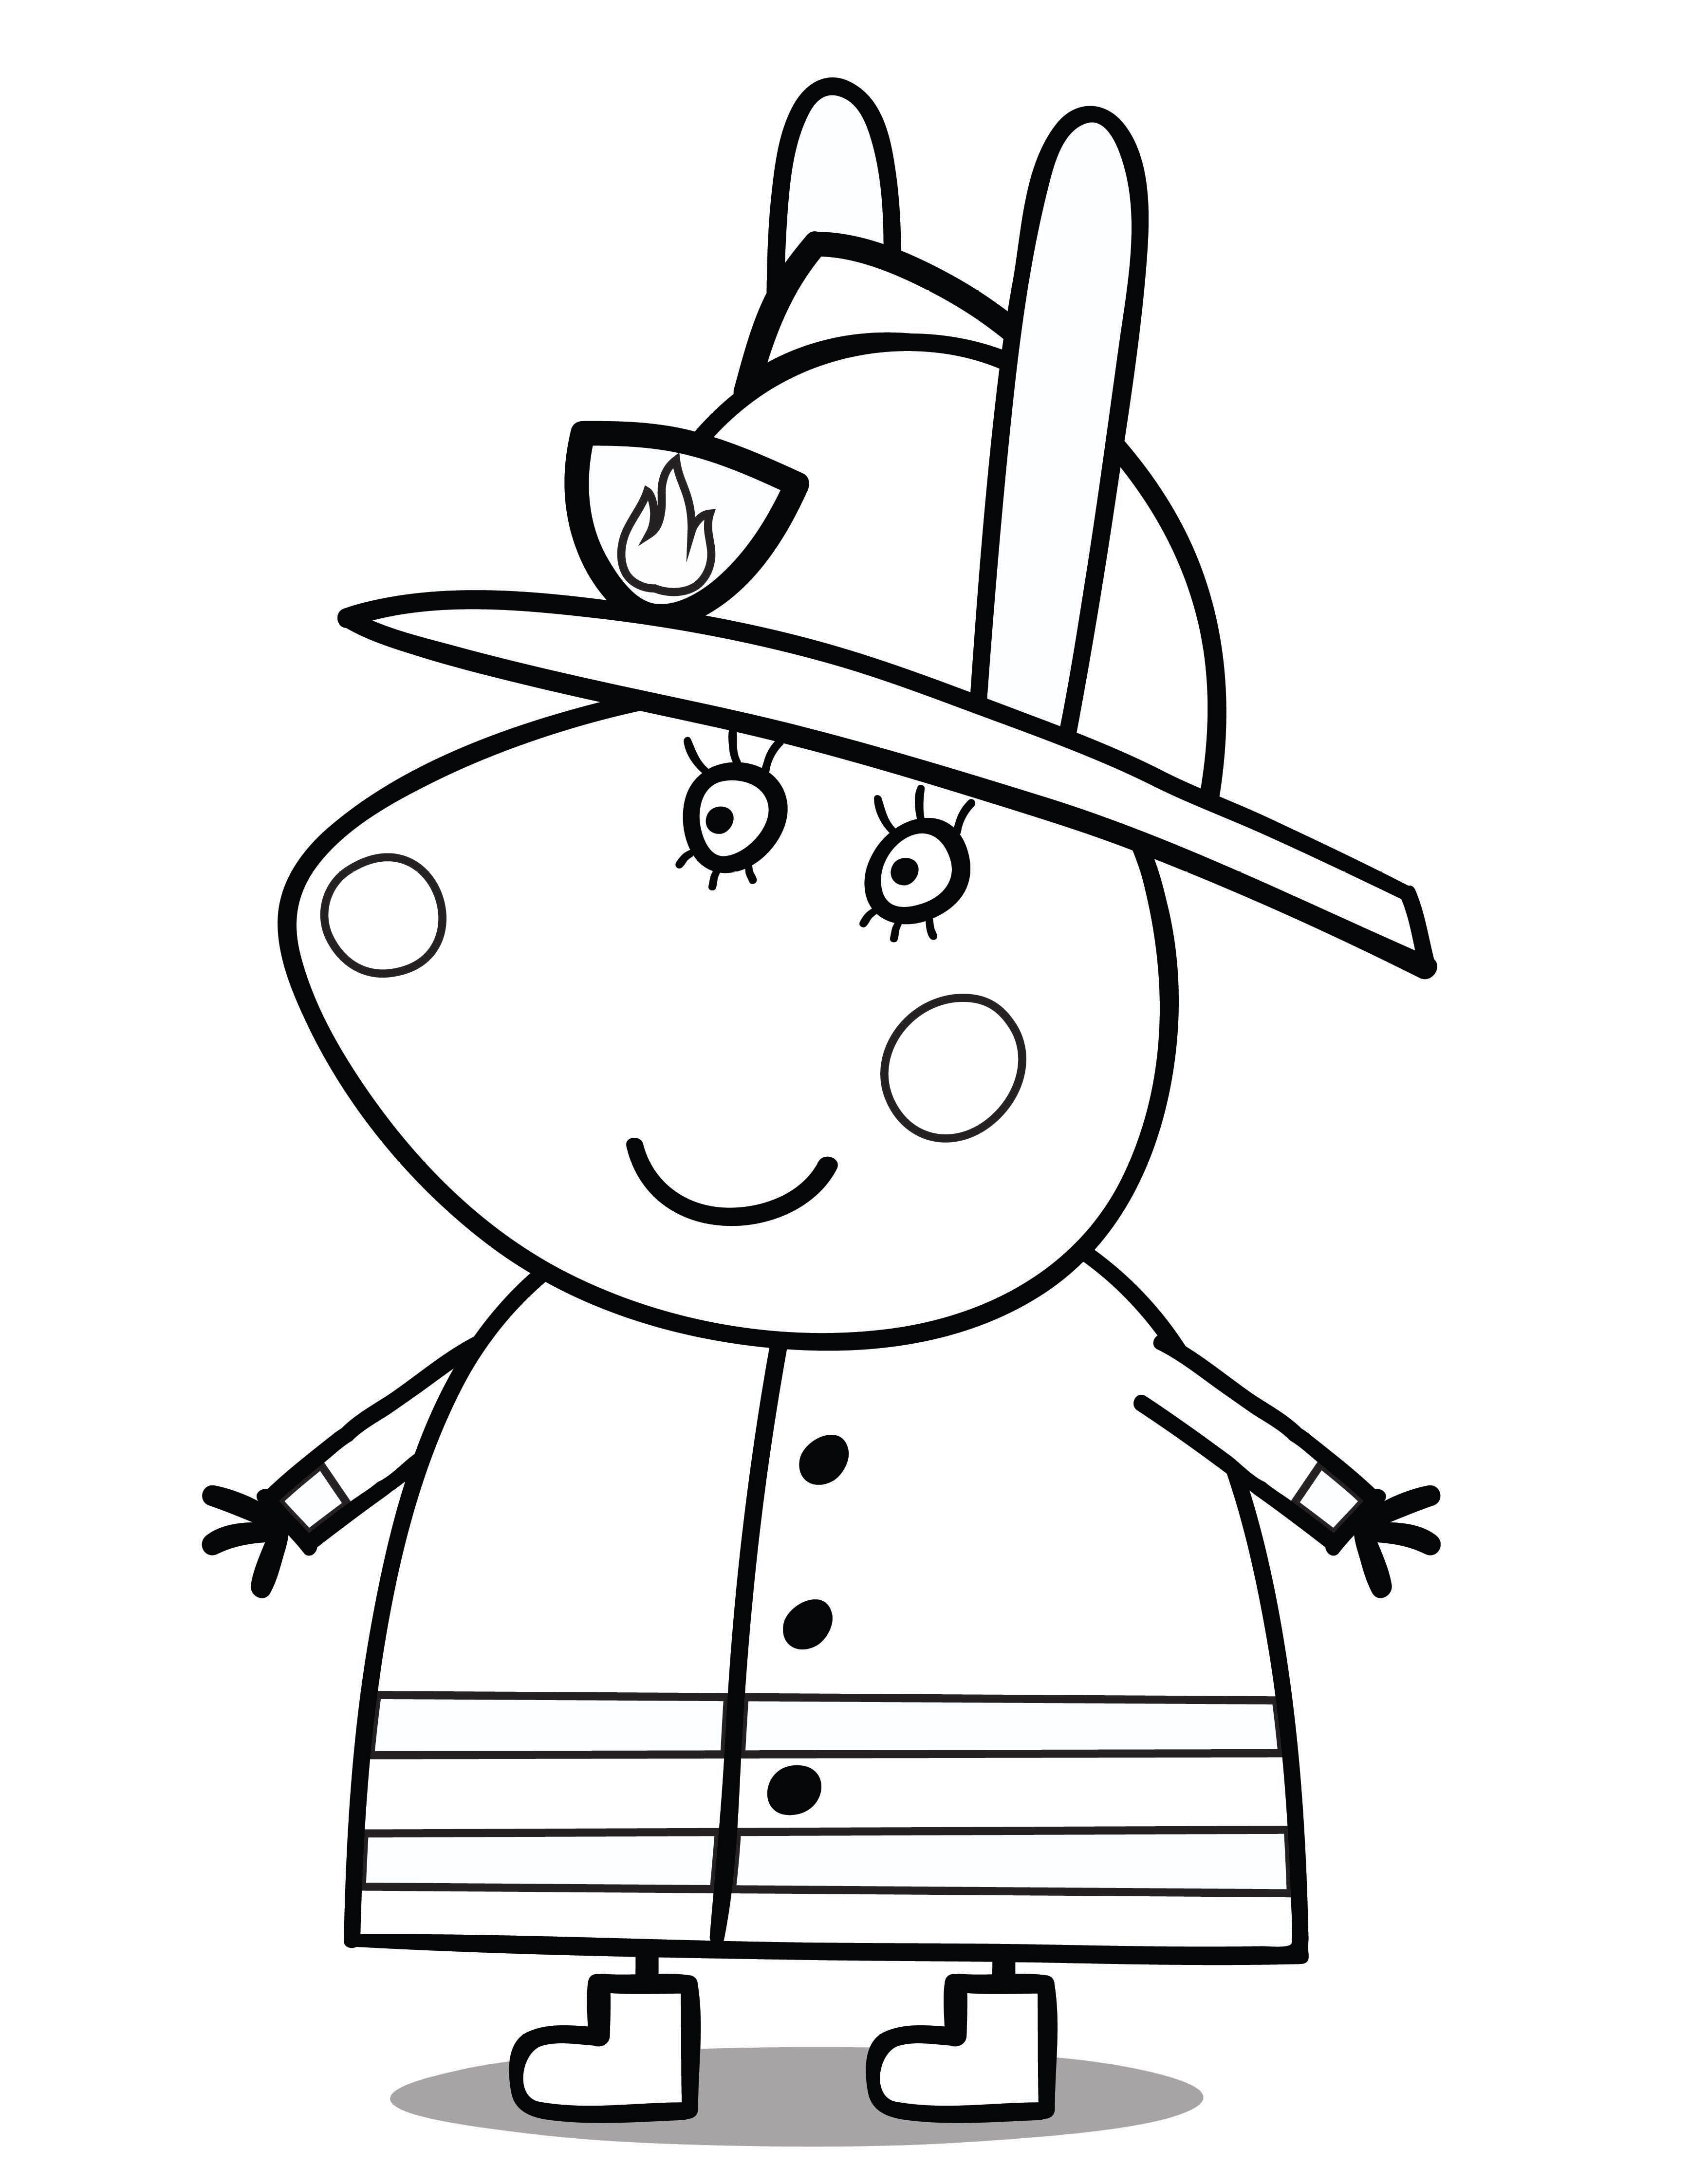 Coloring pages peppa pig -  The Sun Yellow And Peppa Herself Pink The Little Piggy Will Smile With Gratitude To A Young Artist Ninja Turtles Coloring Pages